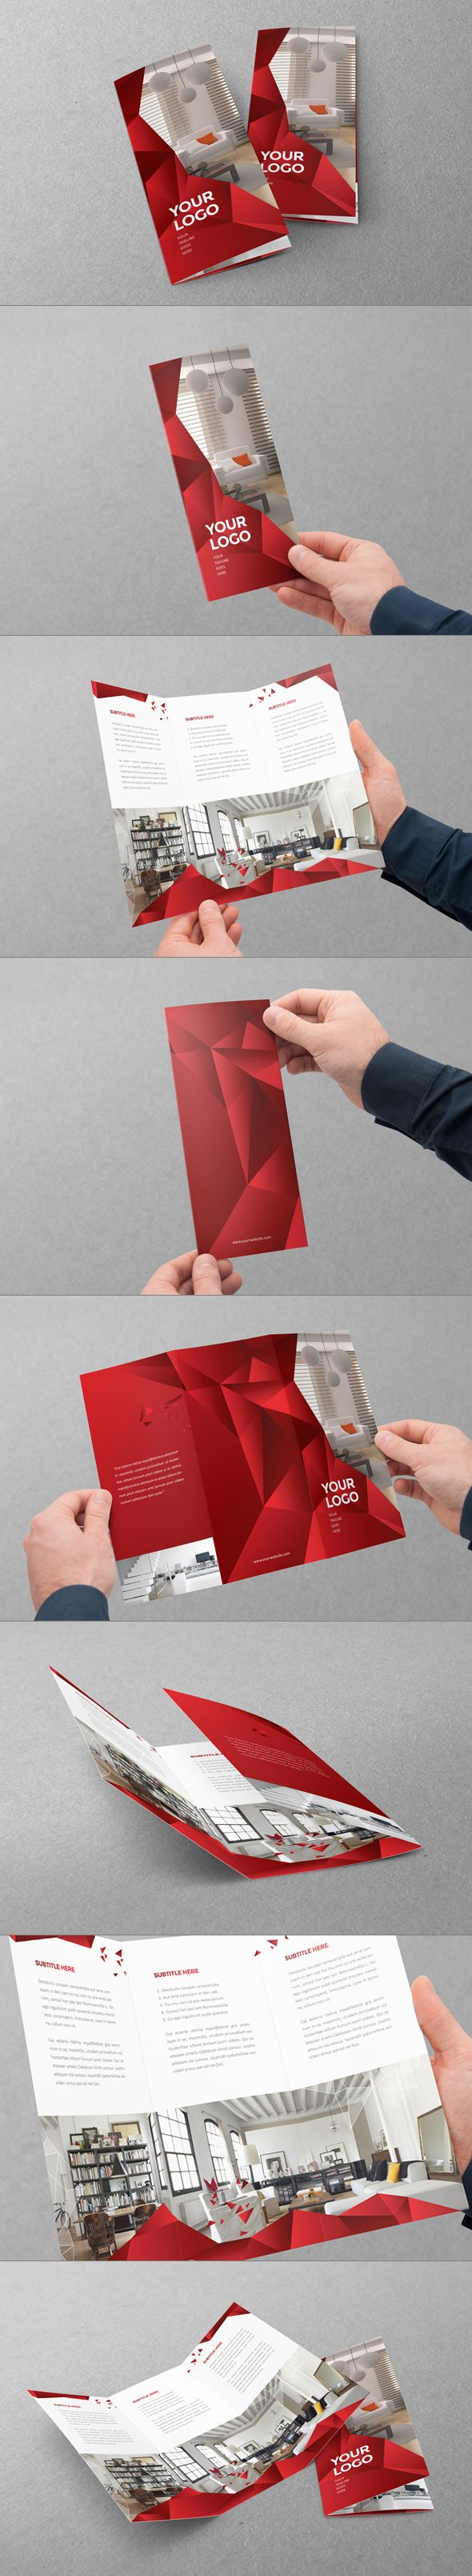 Interior Design Trifold. Download here: http://graphicriver.net/item/interior-design-trifold/6993042?ref=abradesign #design #trifold #brochure